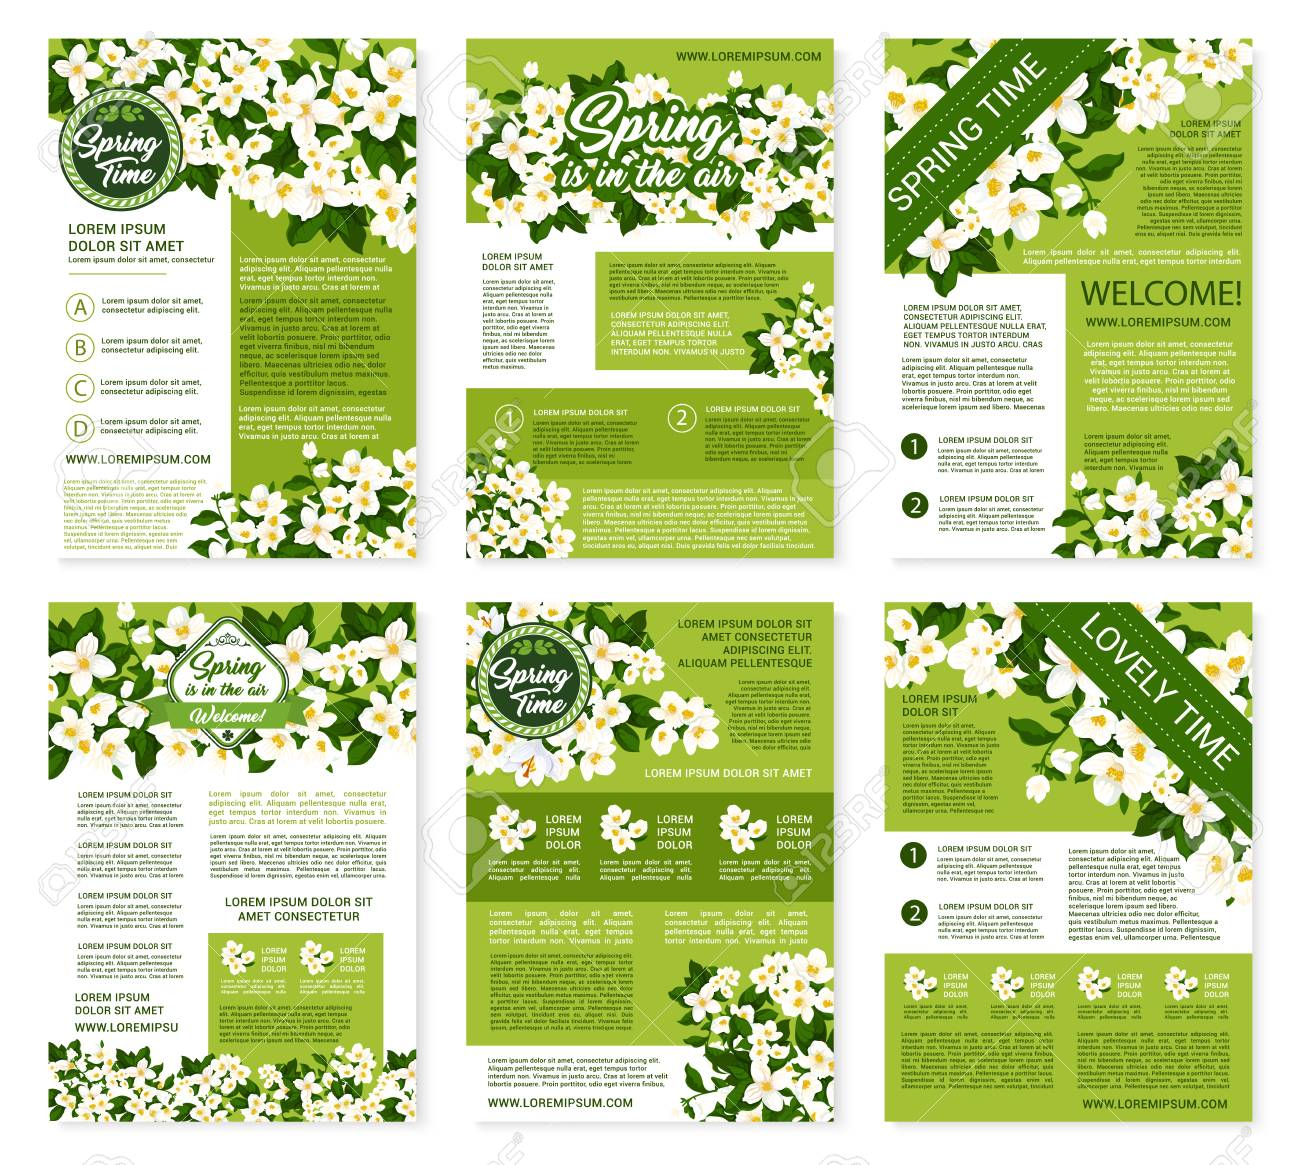 Brochures Templates | Springtime Greetings Design On Vector Posters Or Brochures Templates